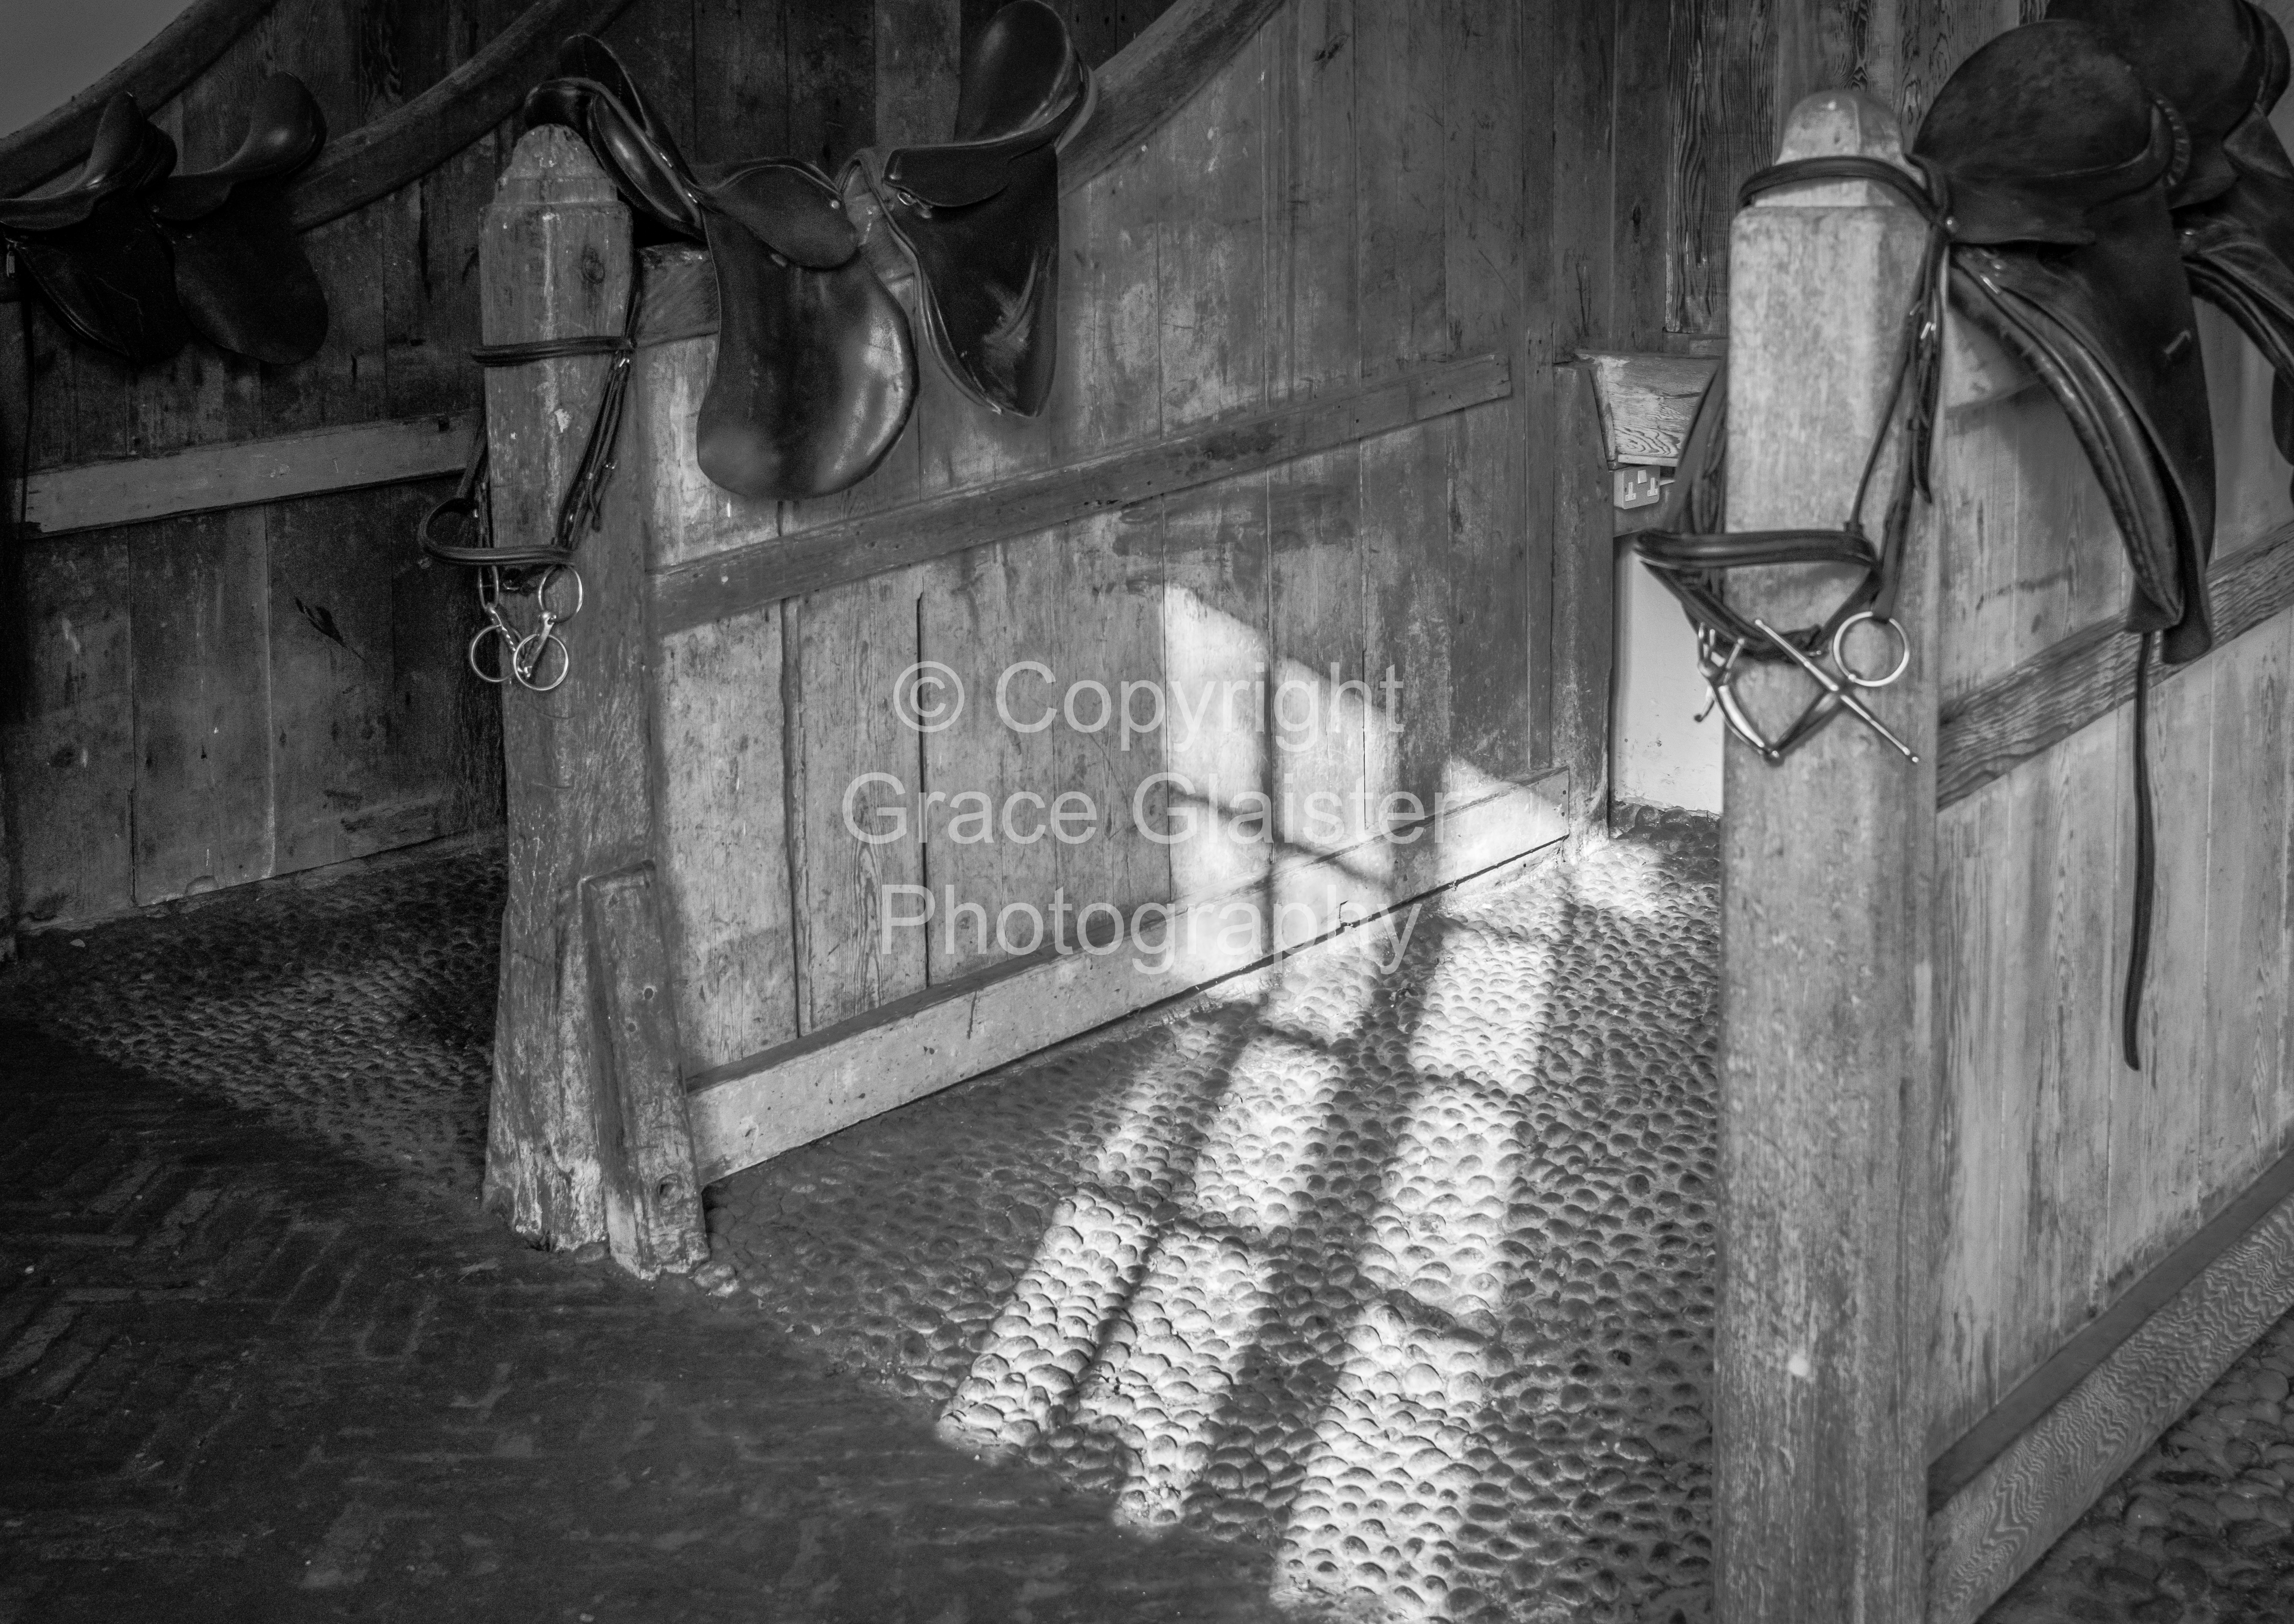 Stables at Felbrigg Hall by Grace Glaister